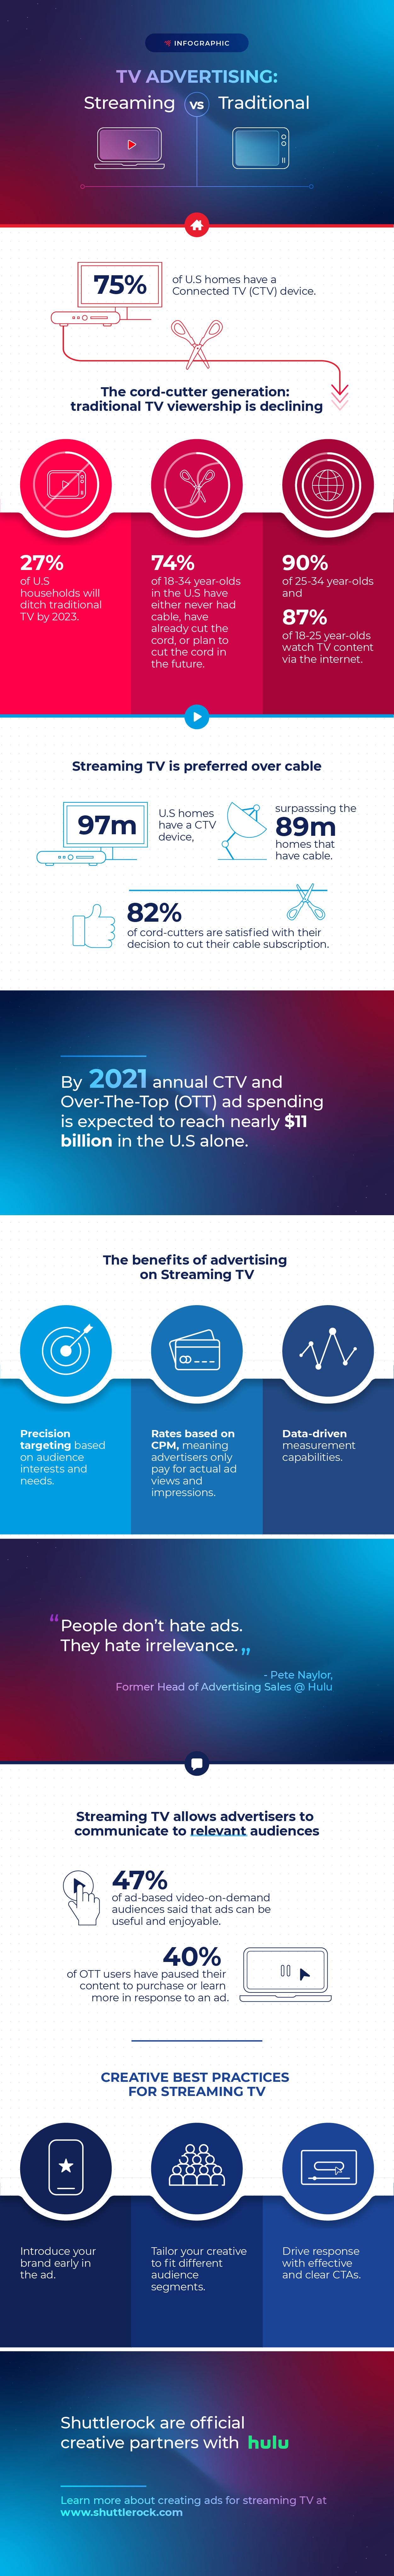 0914_tv-advertising_infographic_R3-1